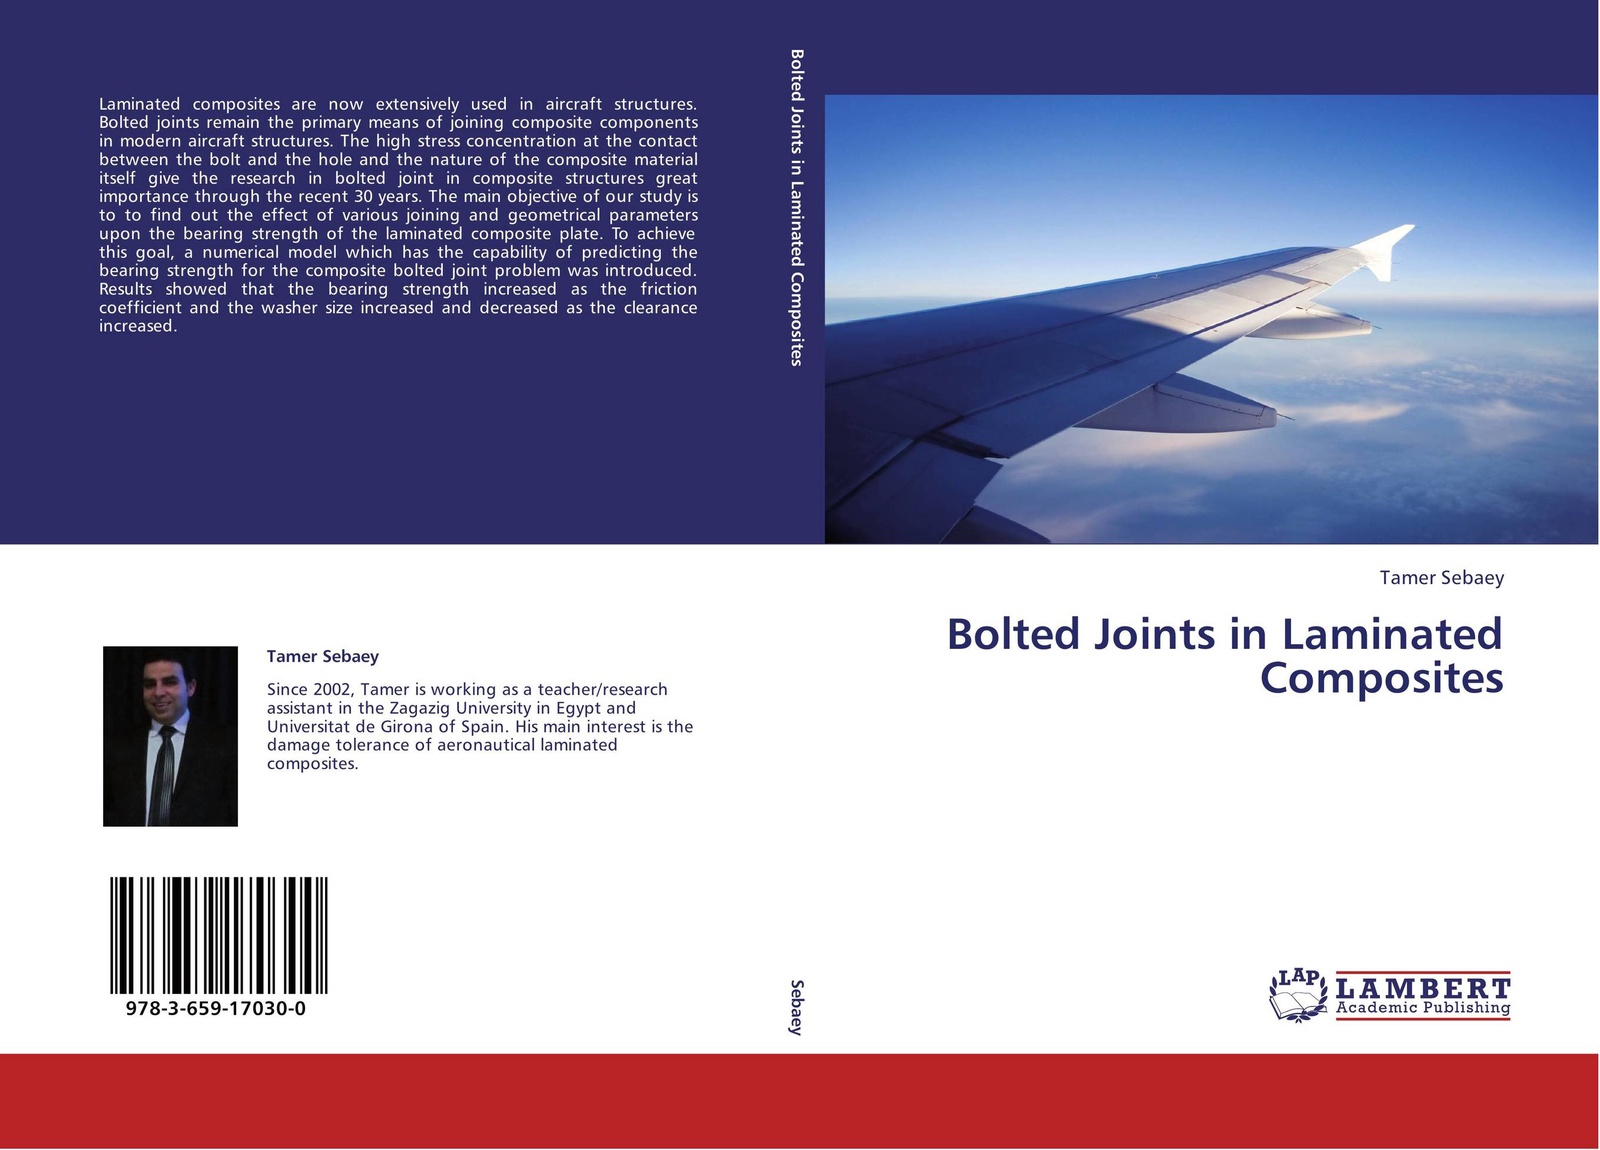 Tamer Sebaey Bolted Joints in Laminated Composites abdelrady okasha elnady and hani negm analysis of composite shell structures using chebyshev series